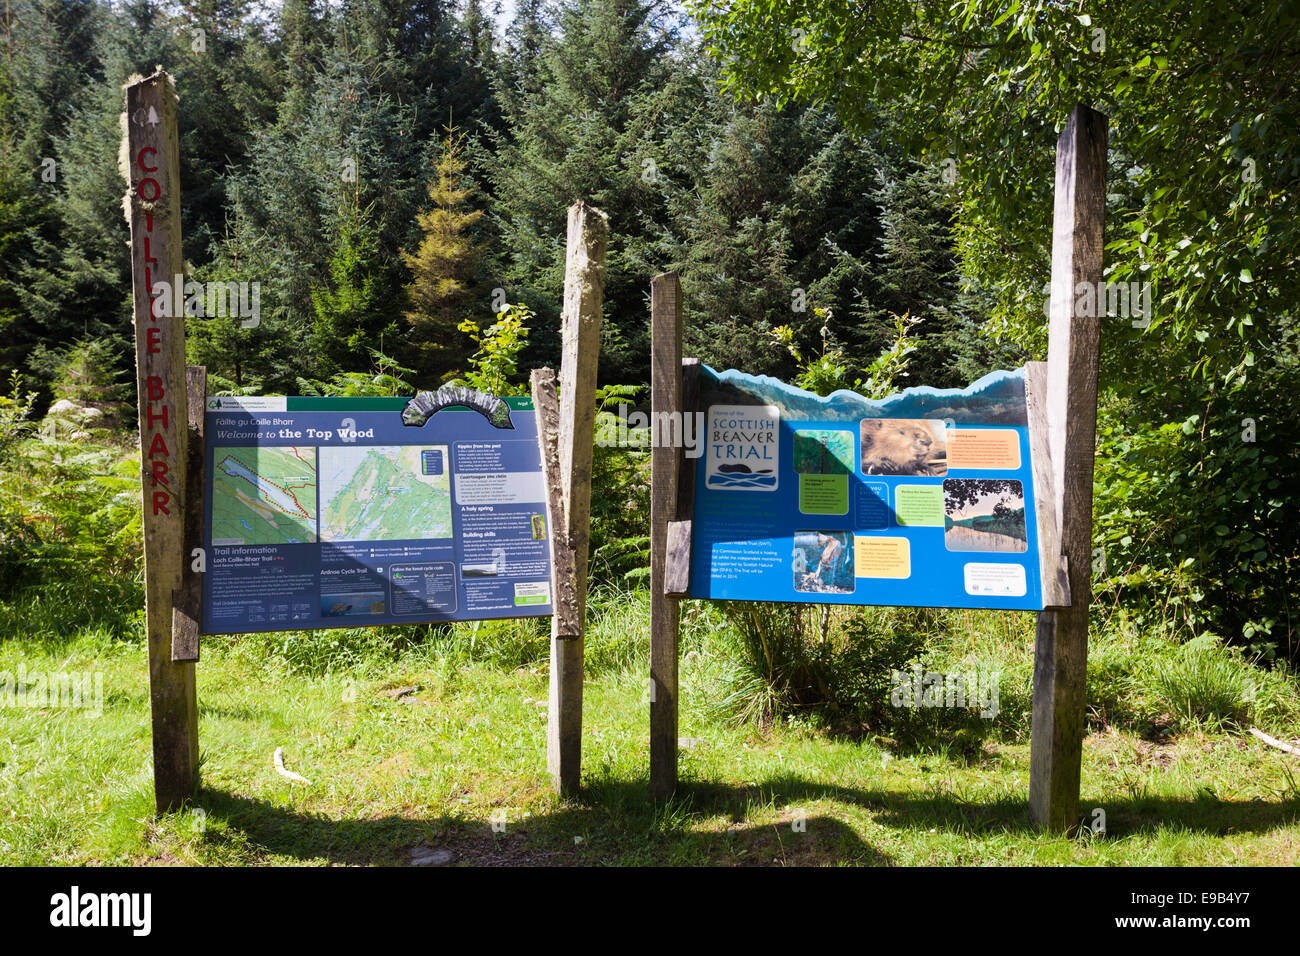 Information signs for the Beaver Trail in Knapdale Forest, Argyll & Bute, Scotland UK Stock Photo